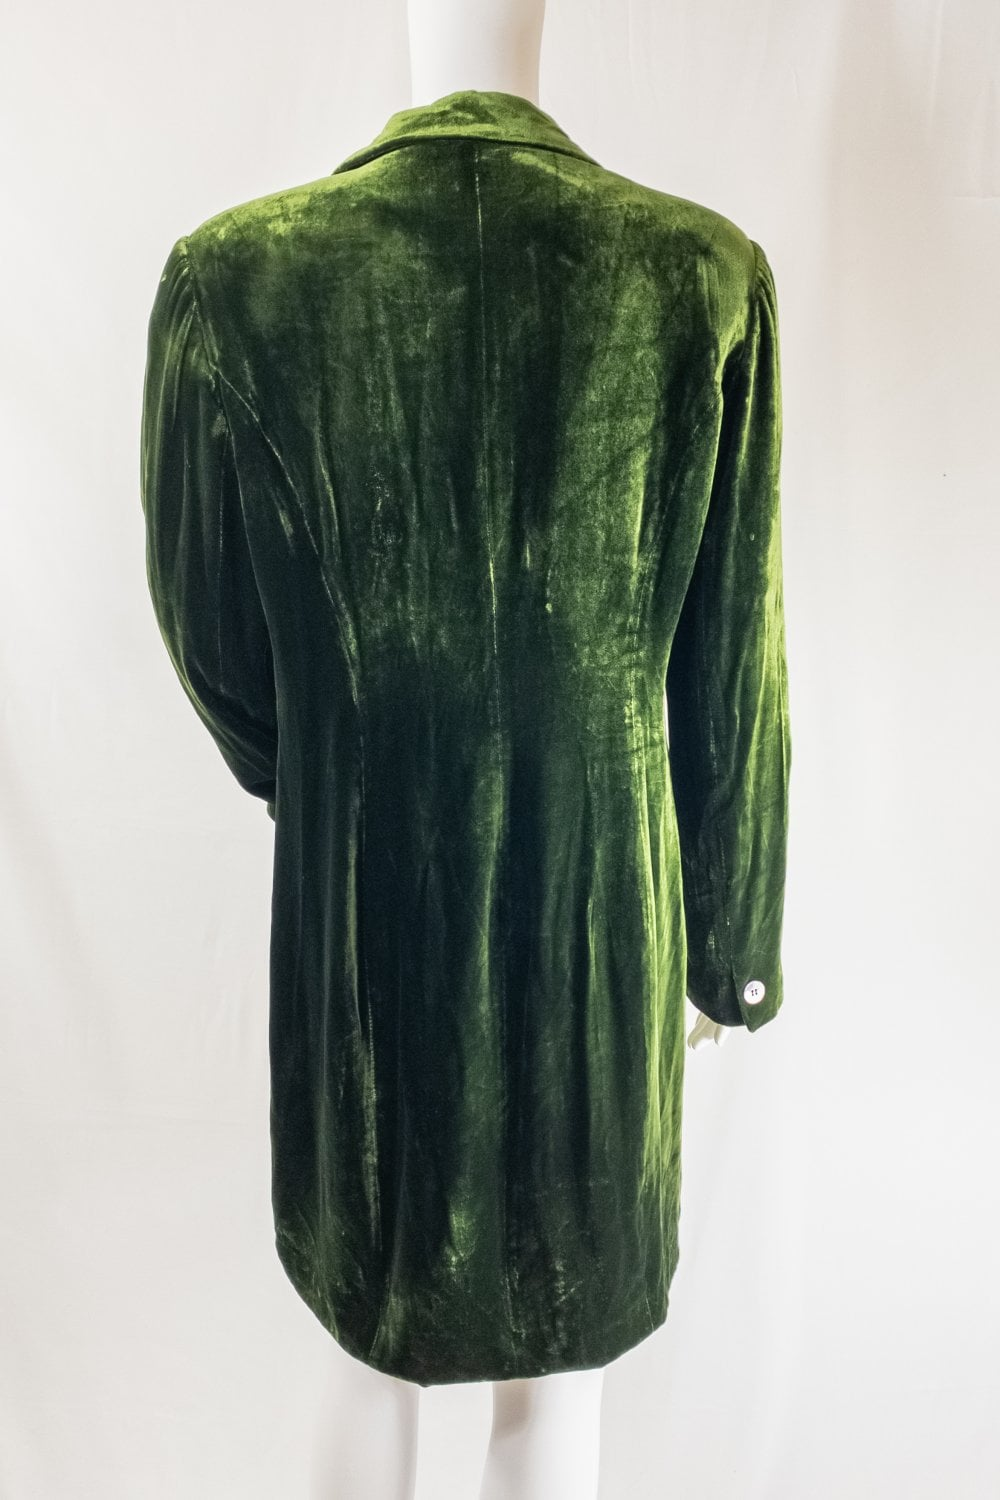 Vintage Style Vintage Green Velvet Coat Vintage From Daisy Chain Project Teesside Uk